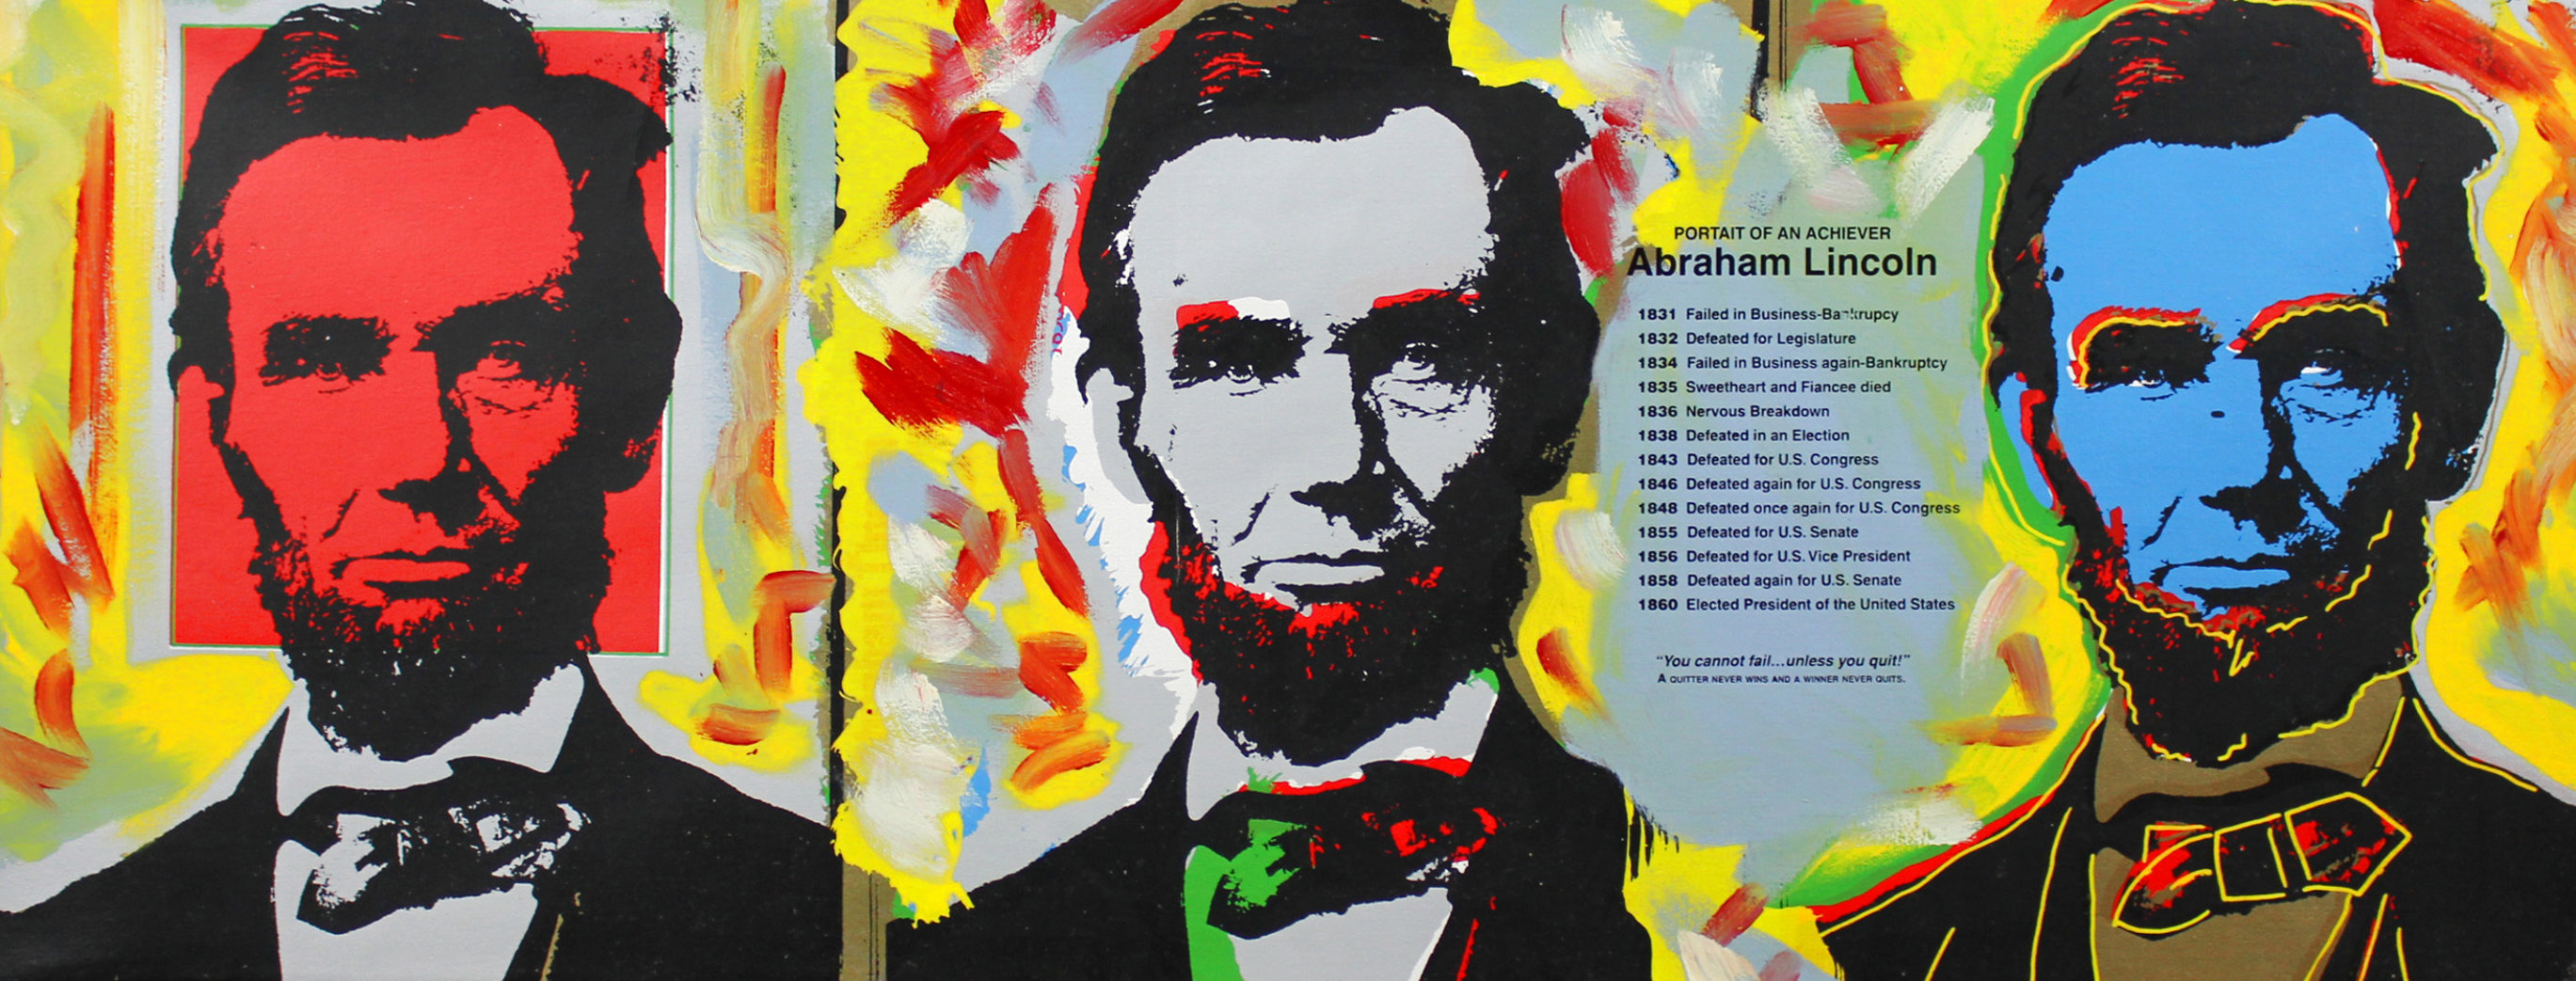 Abe Lincoln (3 Faces) Embellished Limited Edition Print by Steve Kaufman